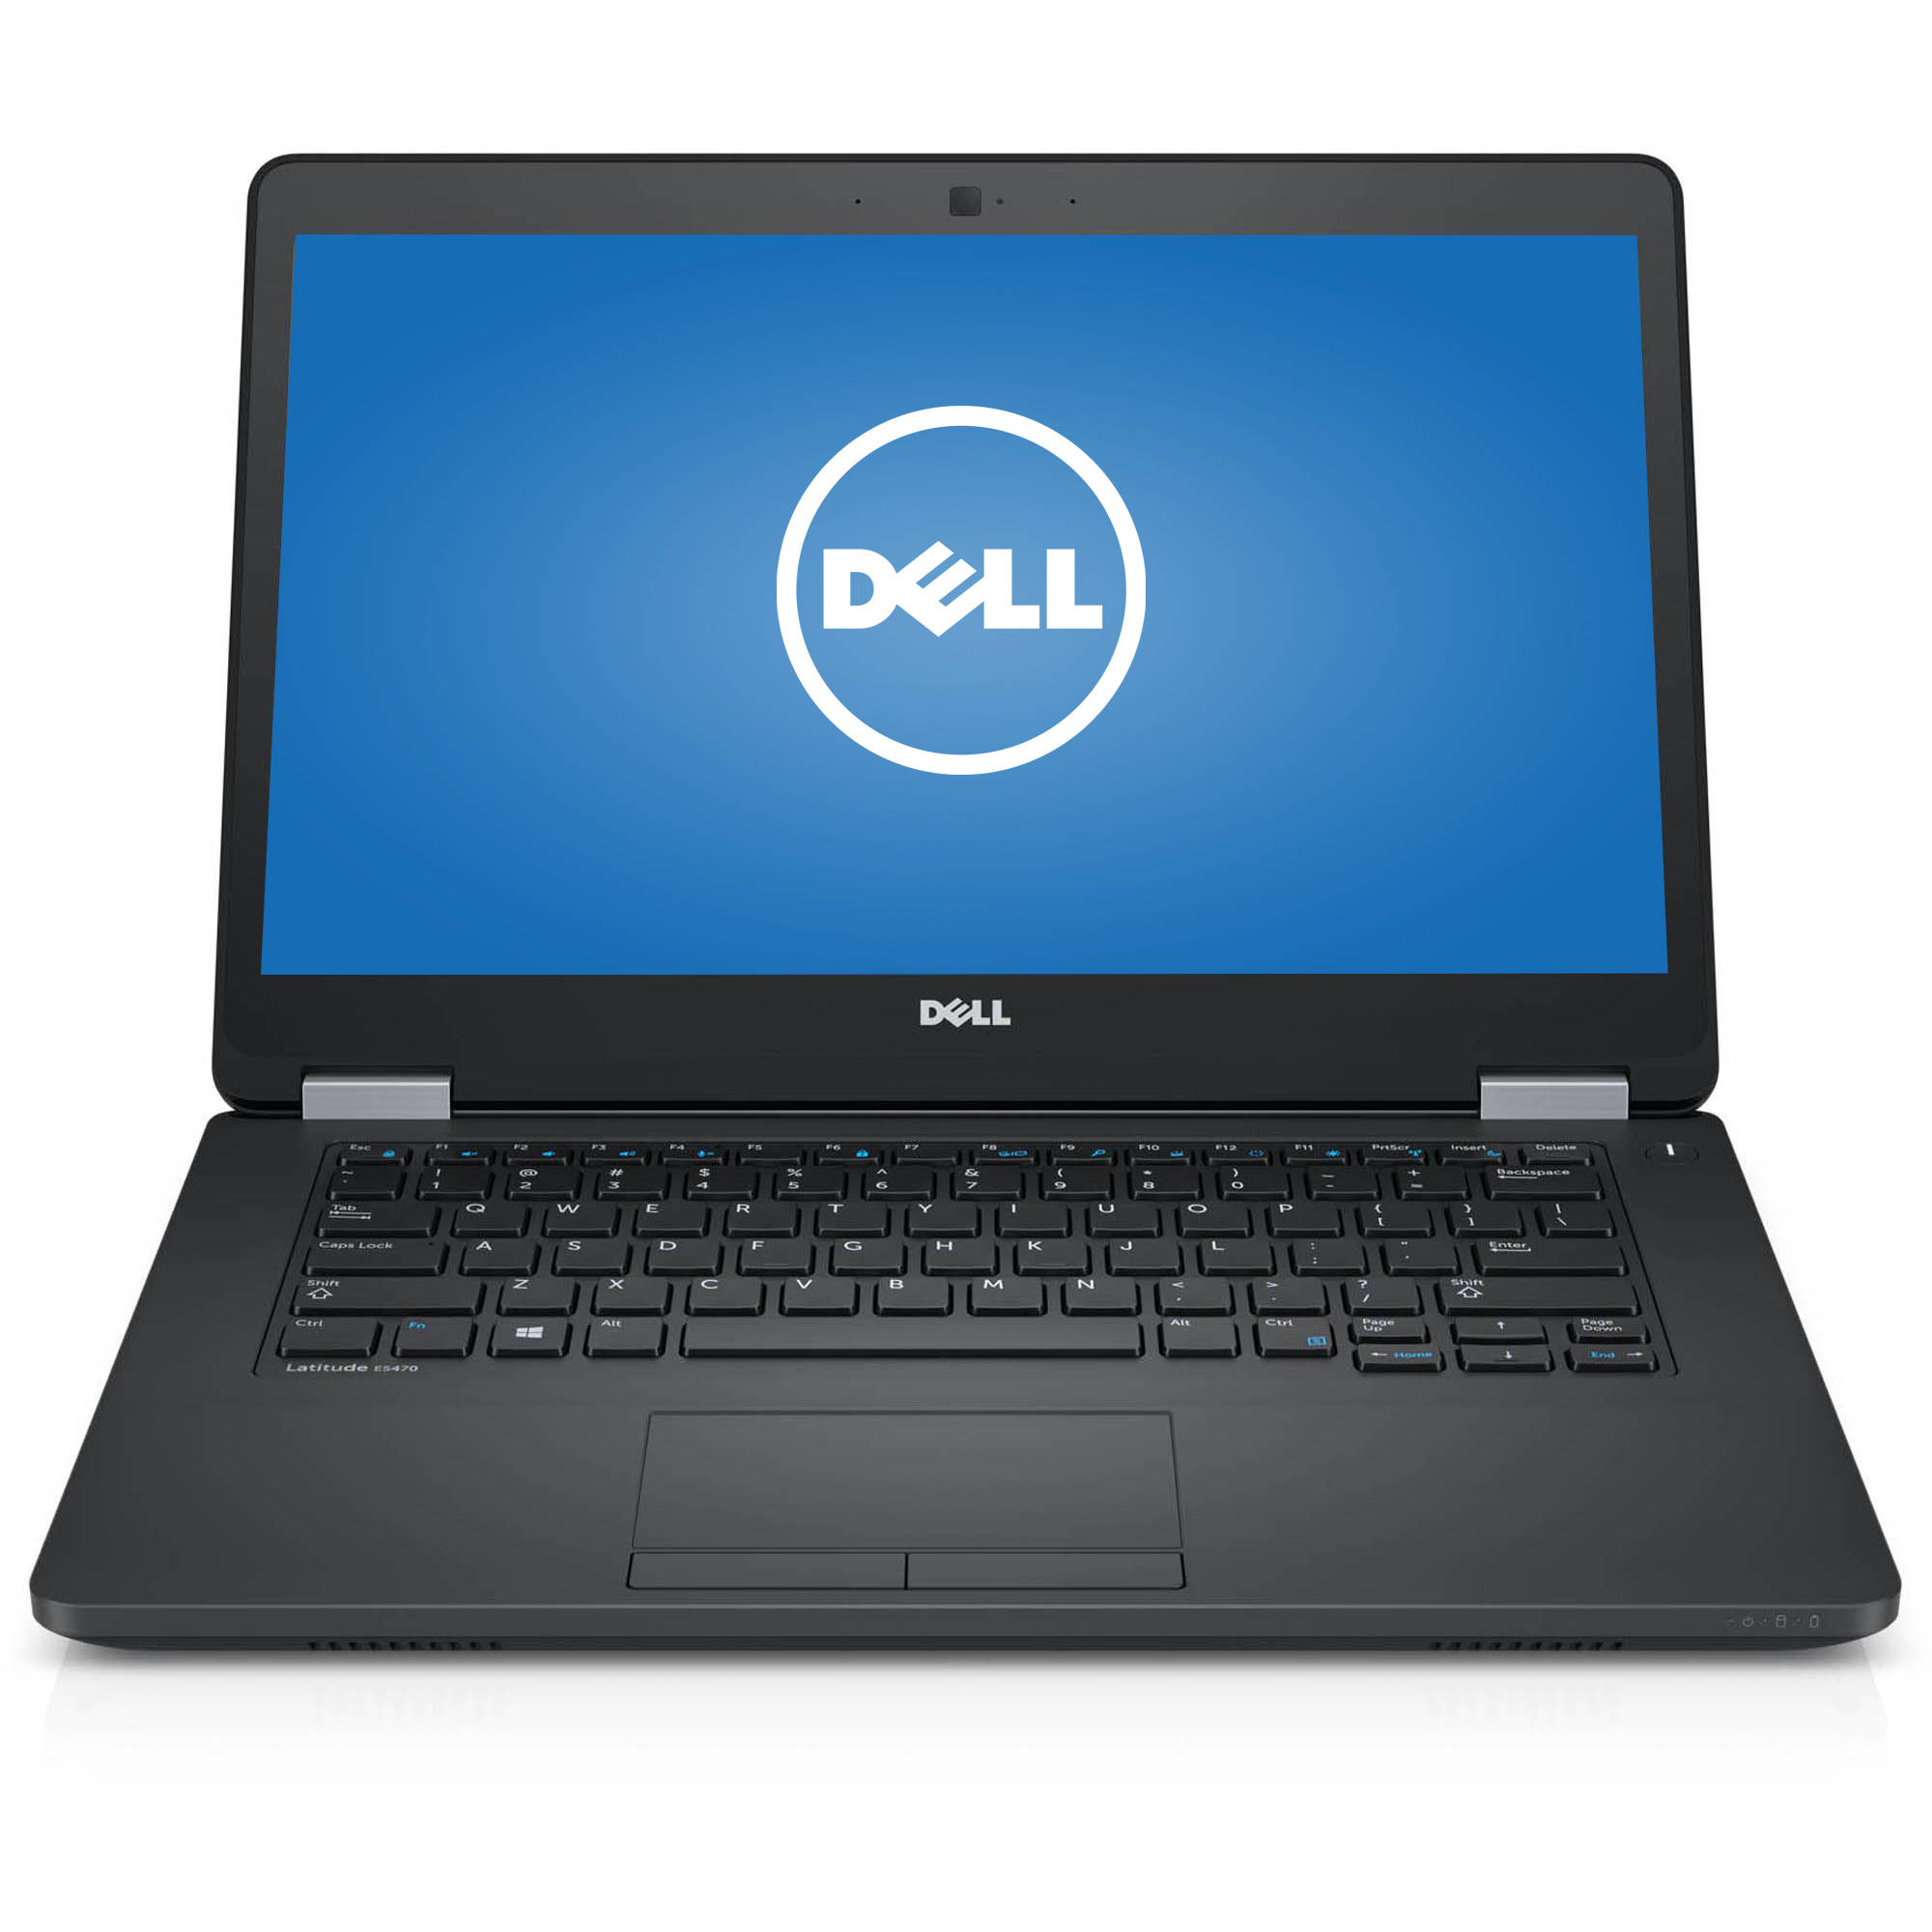 "Dell Latitude 14"" Laptop, Windows 10 Pro, Intel Core i5-6300U Processor, 8GB RAM, 128GB Solid State Drive"